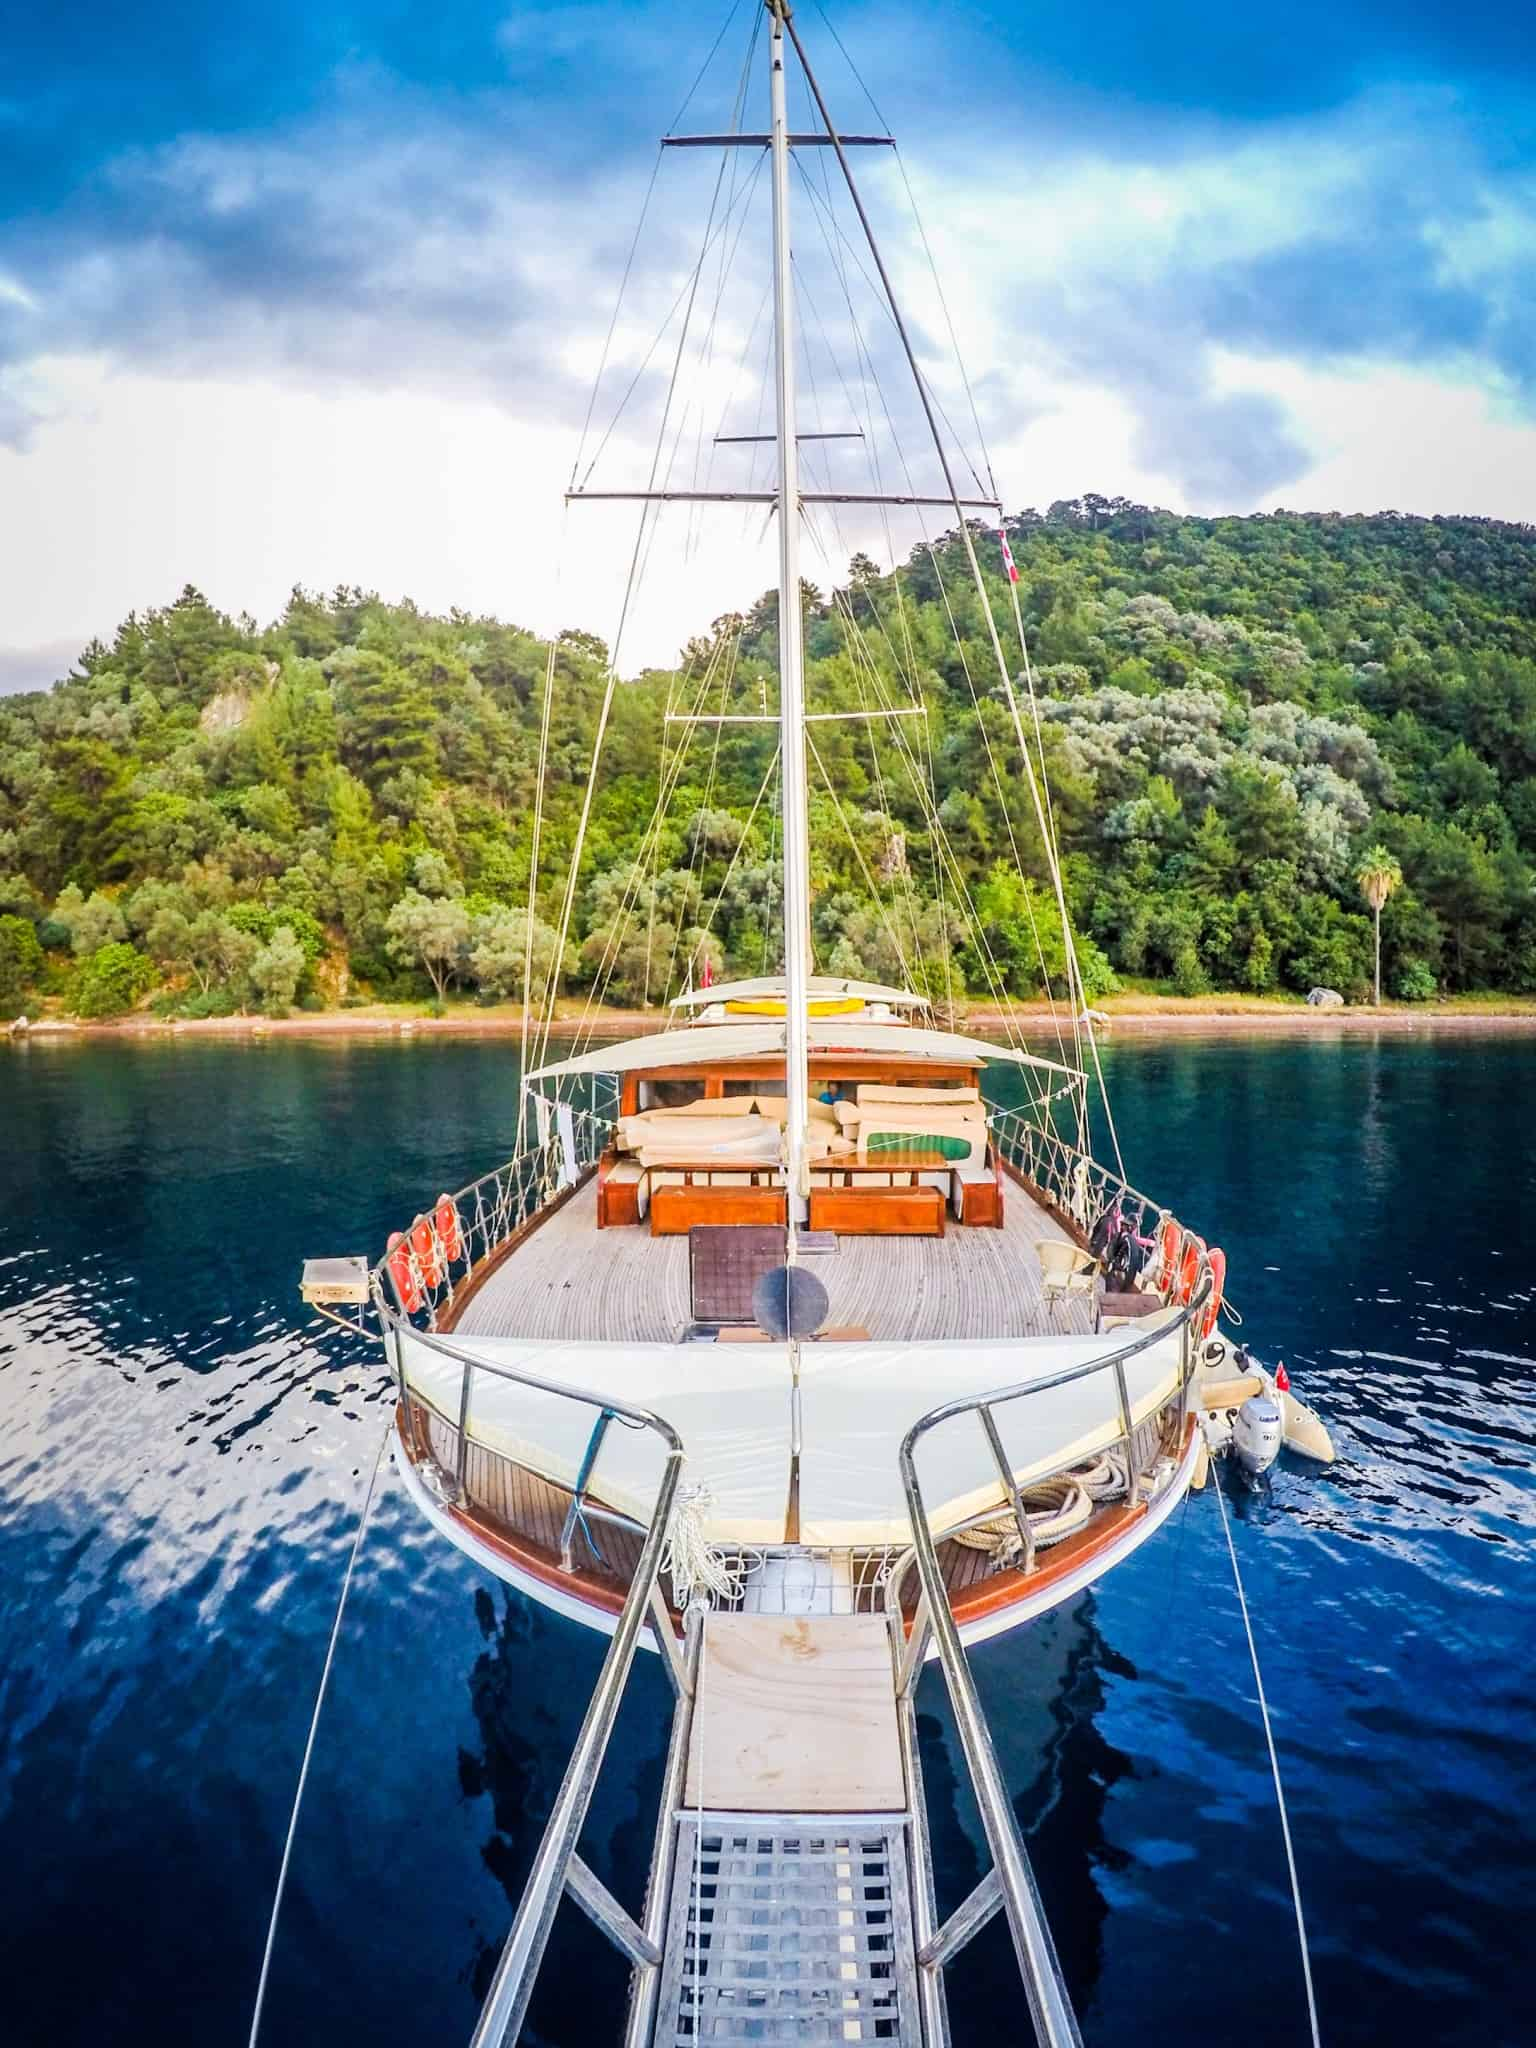 Affordable Yachting in the Mediterranean with MedSea Yachts